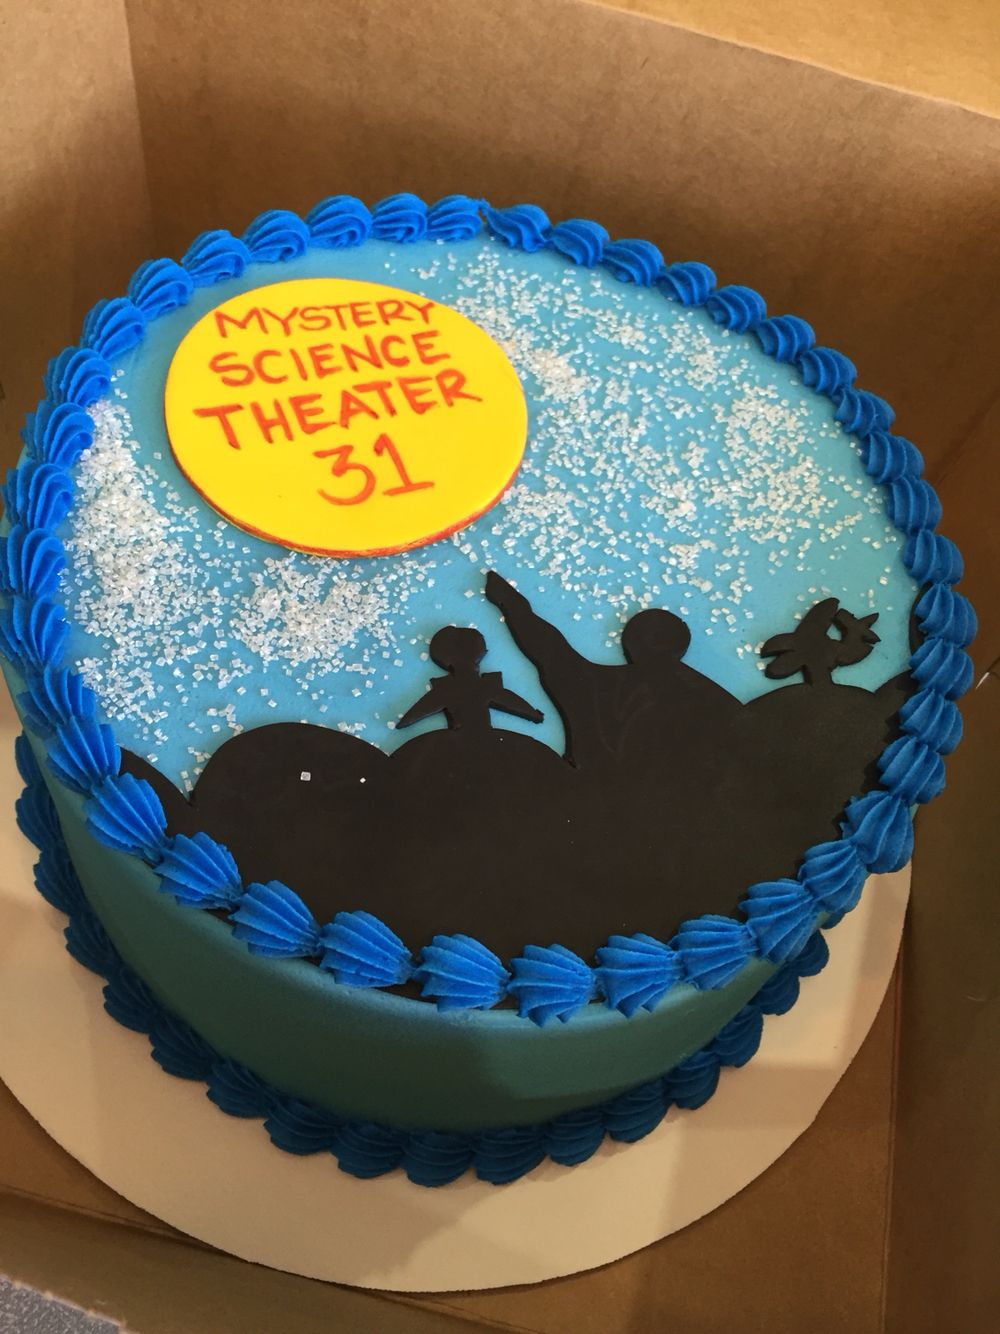 Mystery Science Theater 3000 Cake For Husband S 31st Birthday